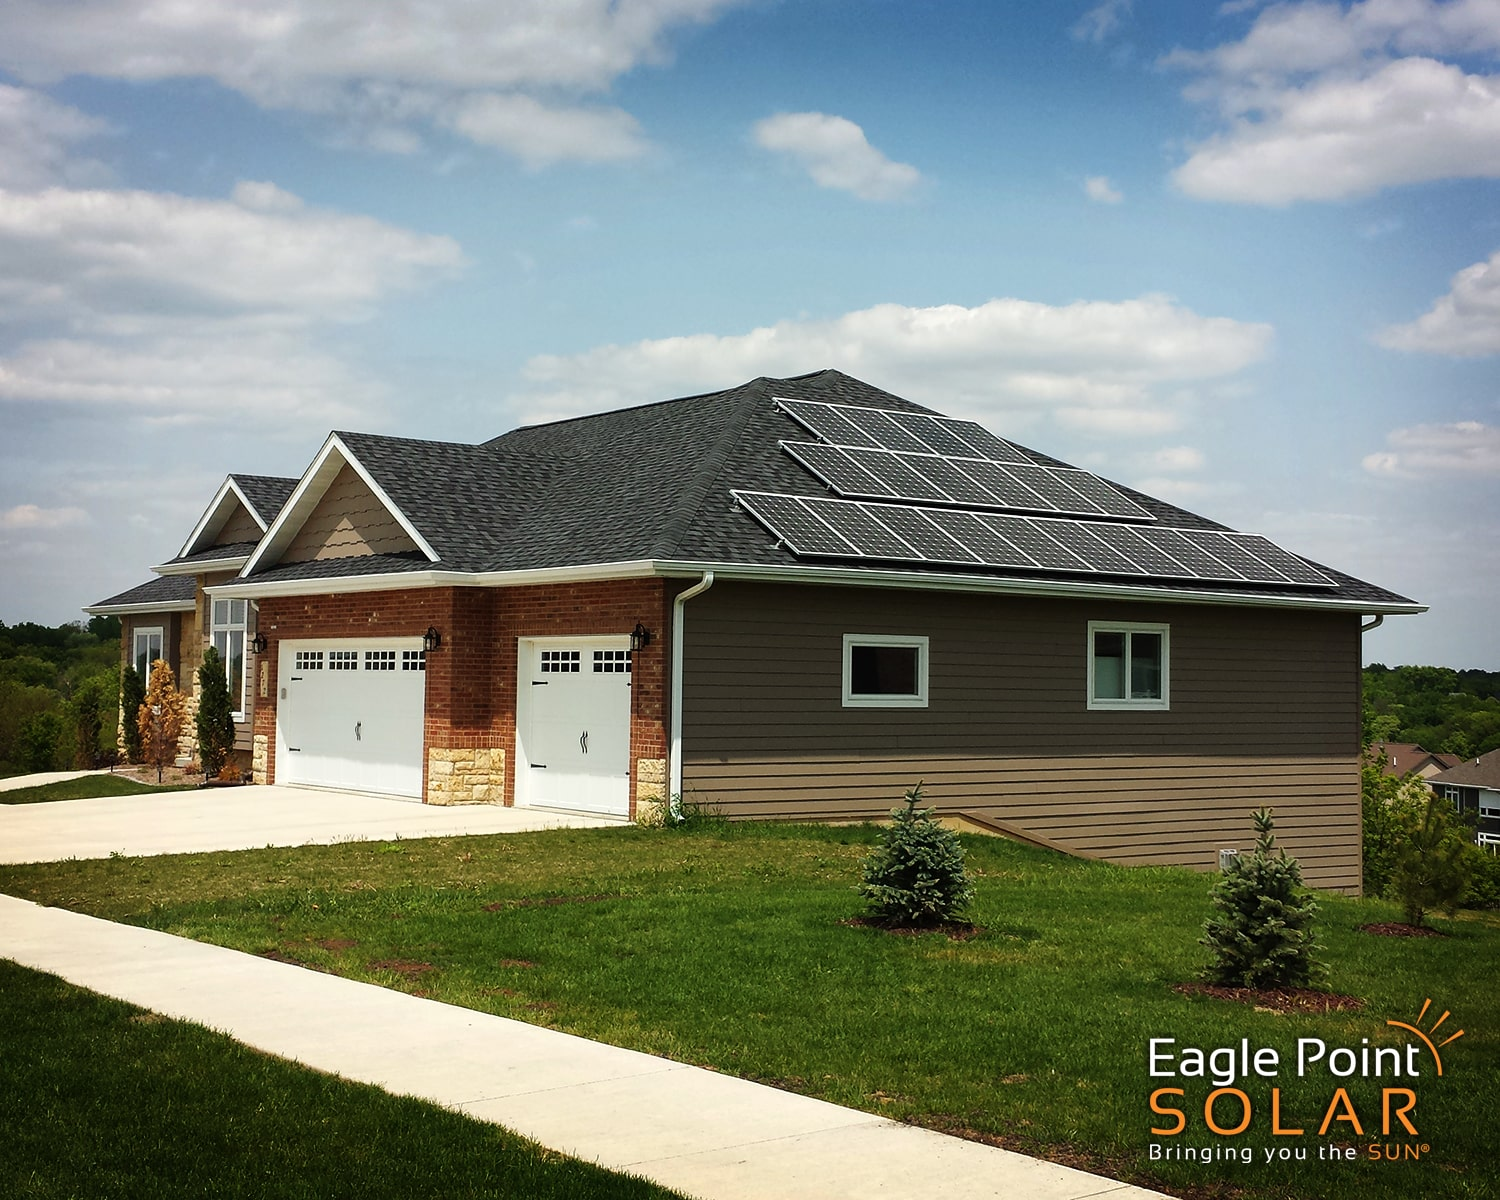 Photo of residential roof mounted solar array on Silvia